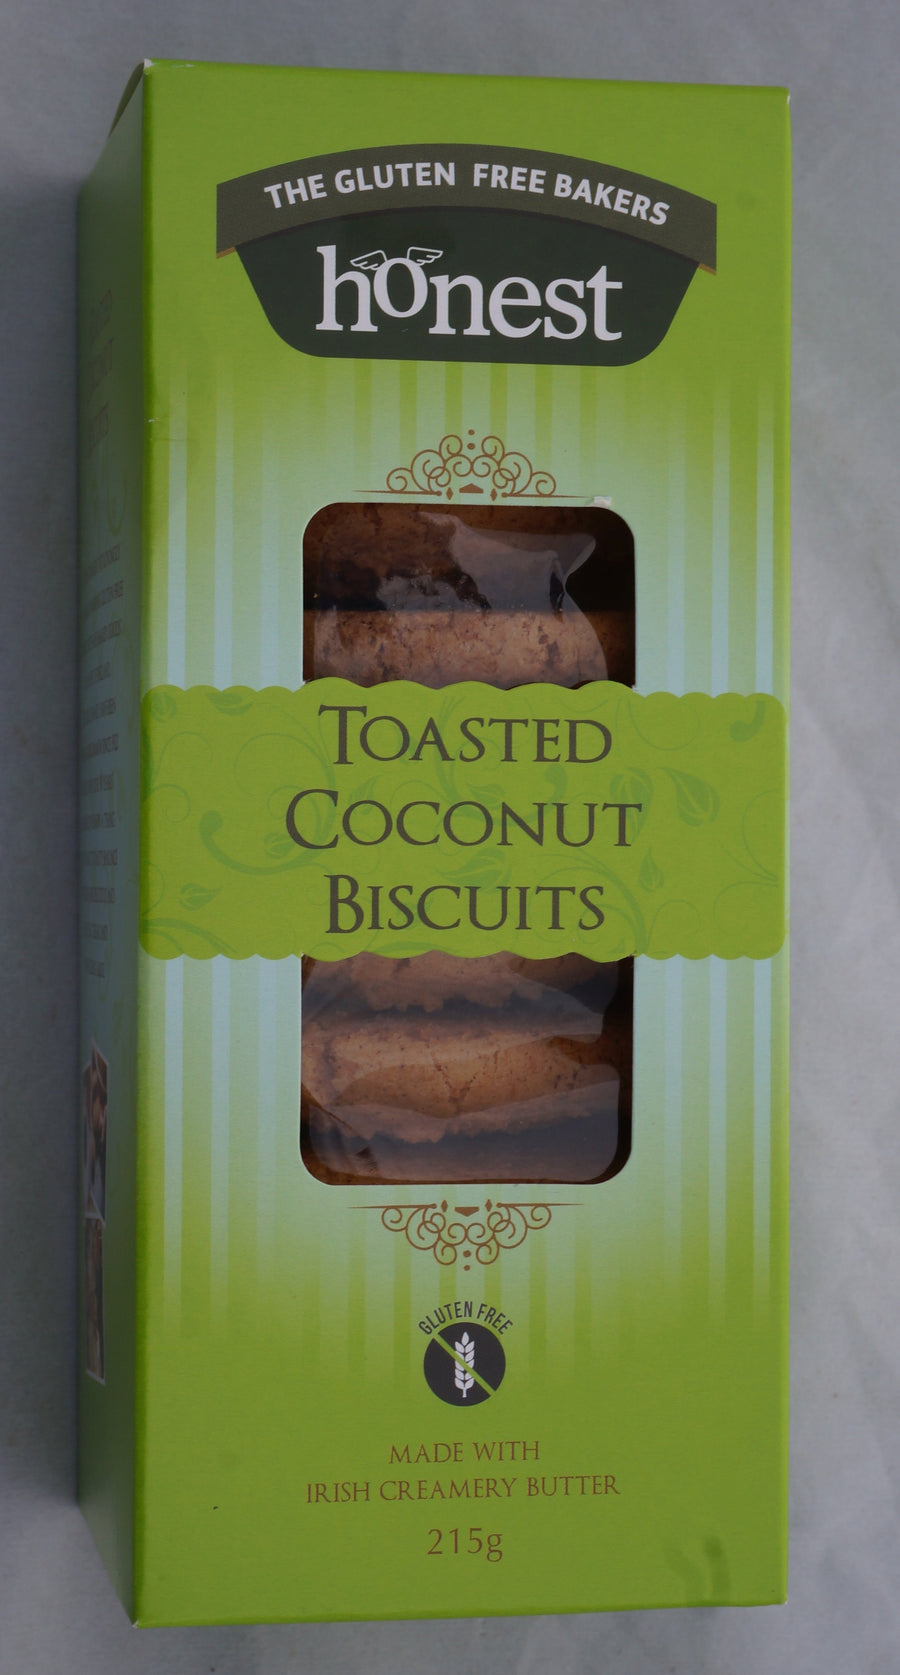 Gluten Free Toasted Coconut Biscuit Product Image